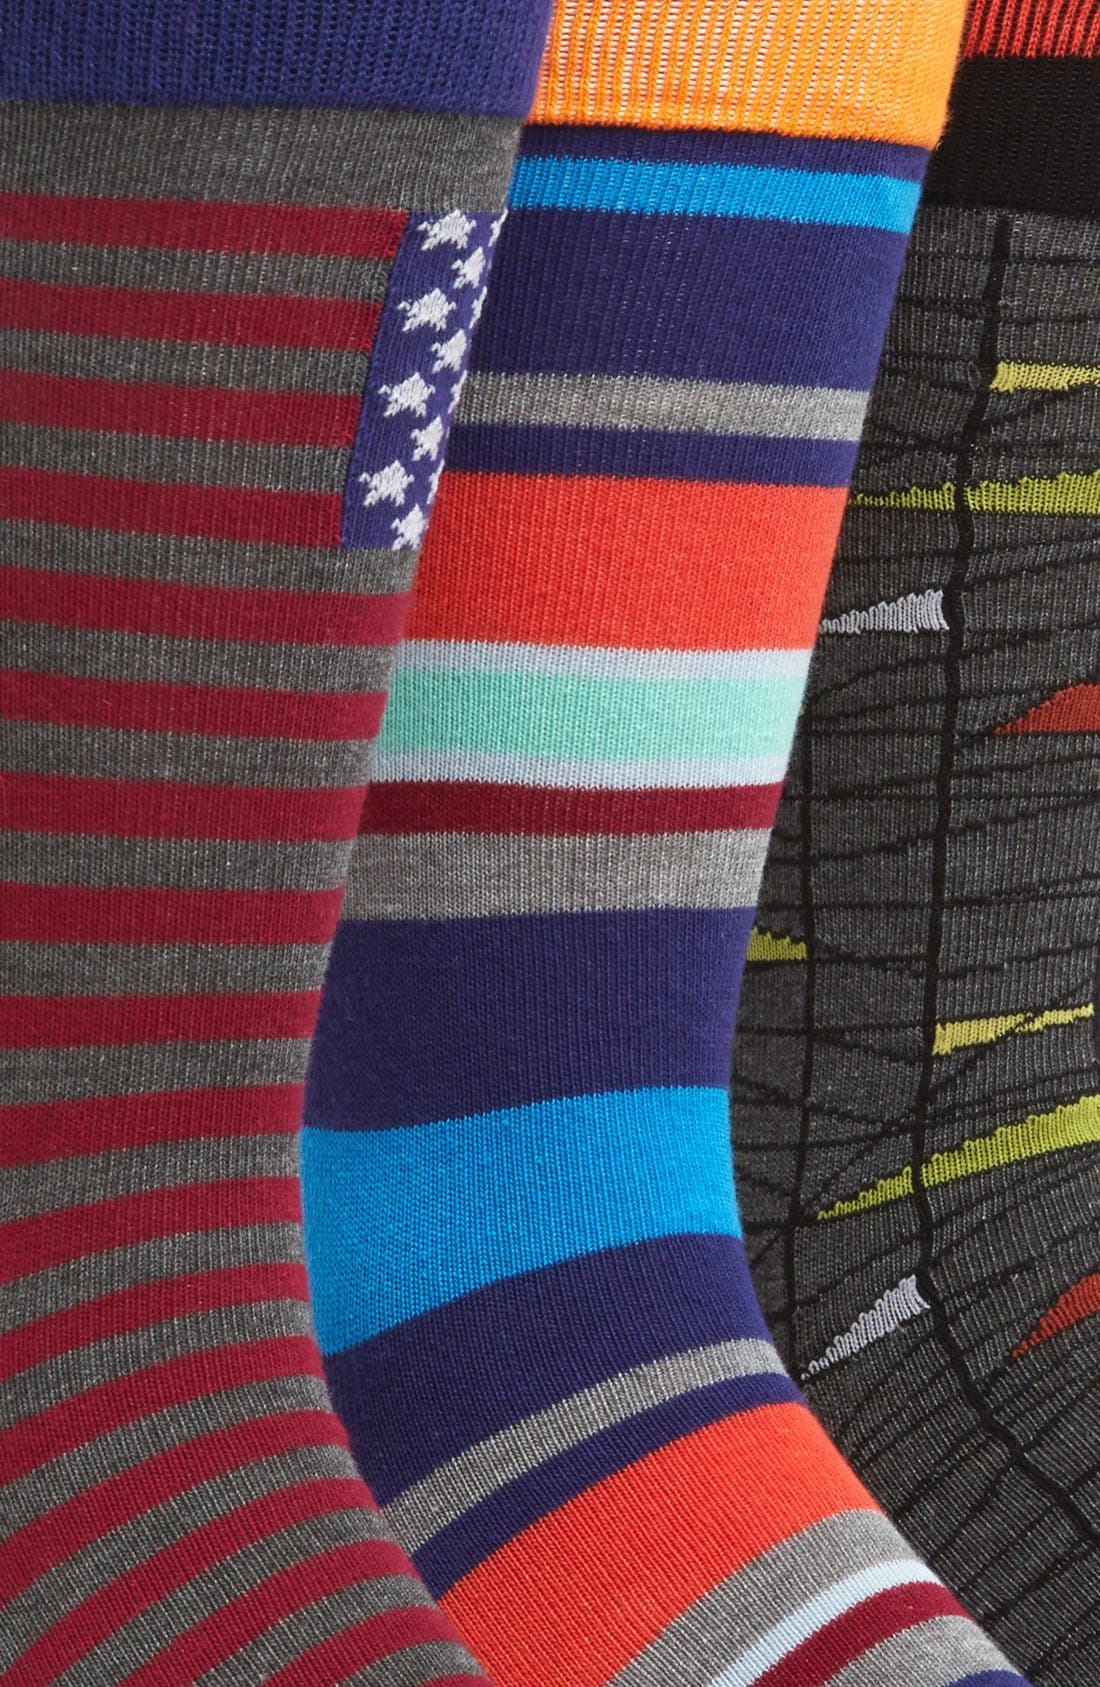 Alternate Image 2  - The Rail Patterned Crew Socks (Assorted 3-Pack)